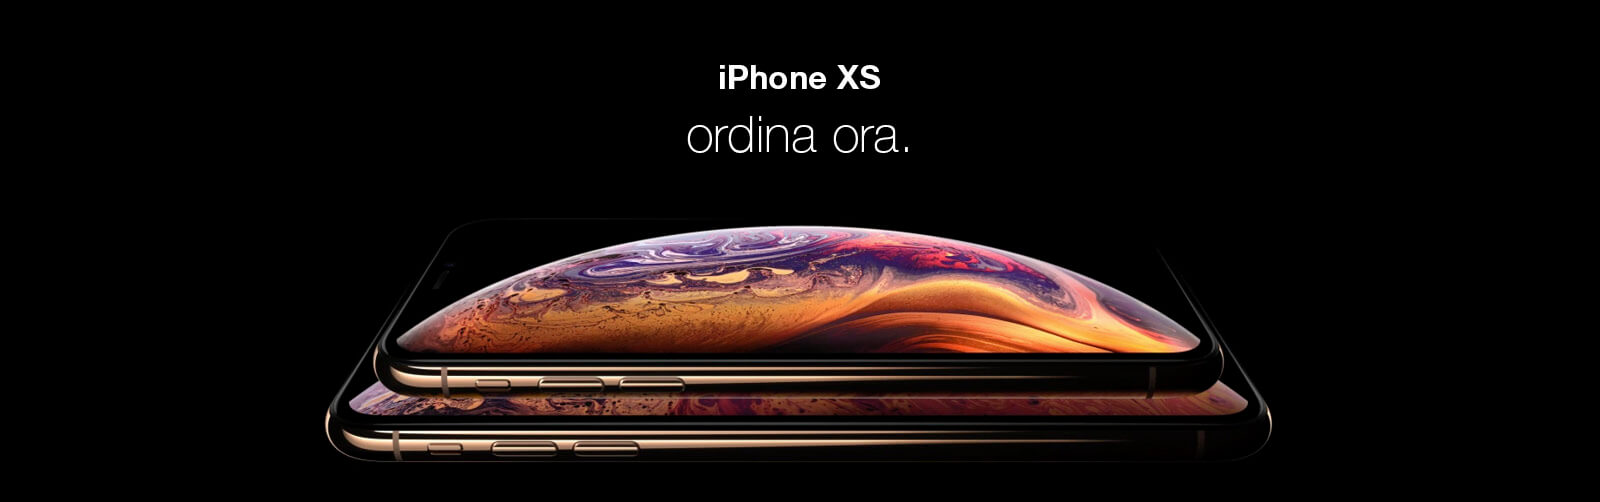 KW_37_2018_Apple_iPhoneXS_IT